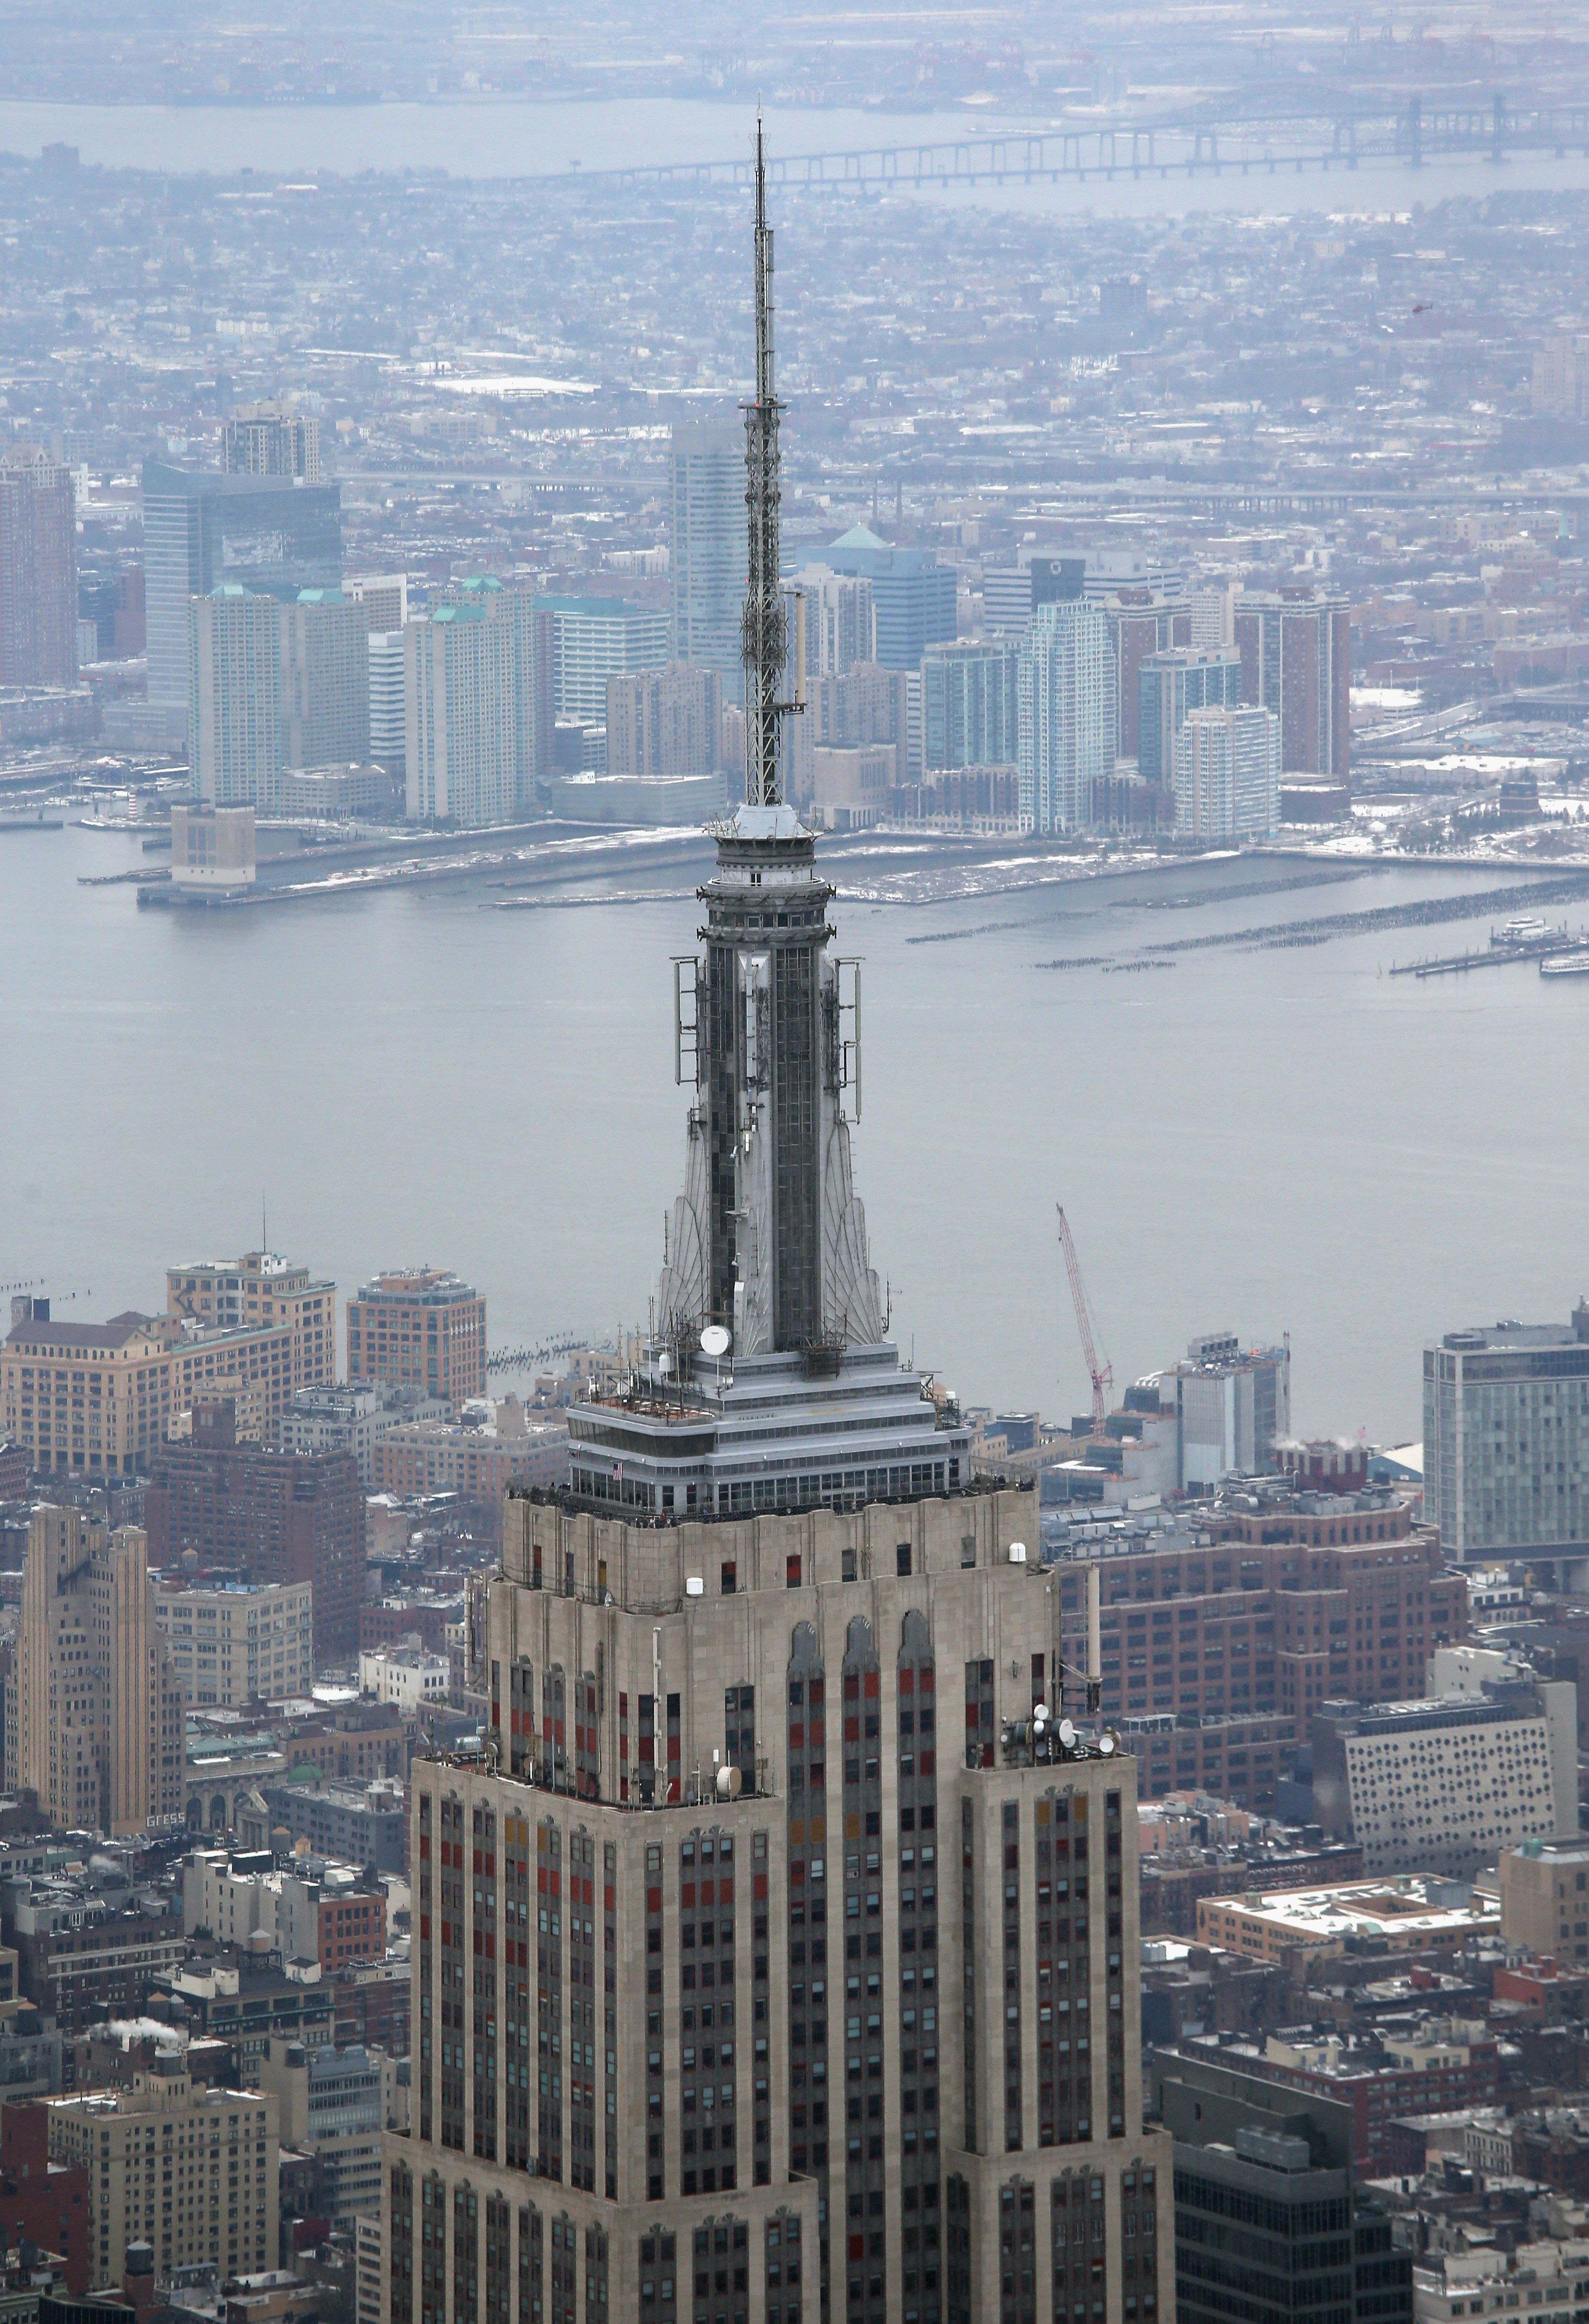 empire state building 39 s mooring mast. Black Bedroom Furniture Sets. Home Design Ideas